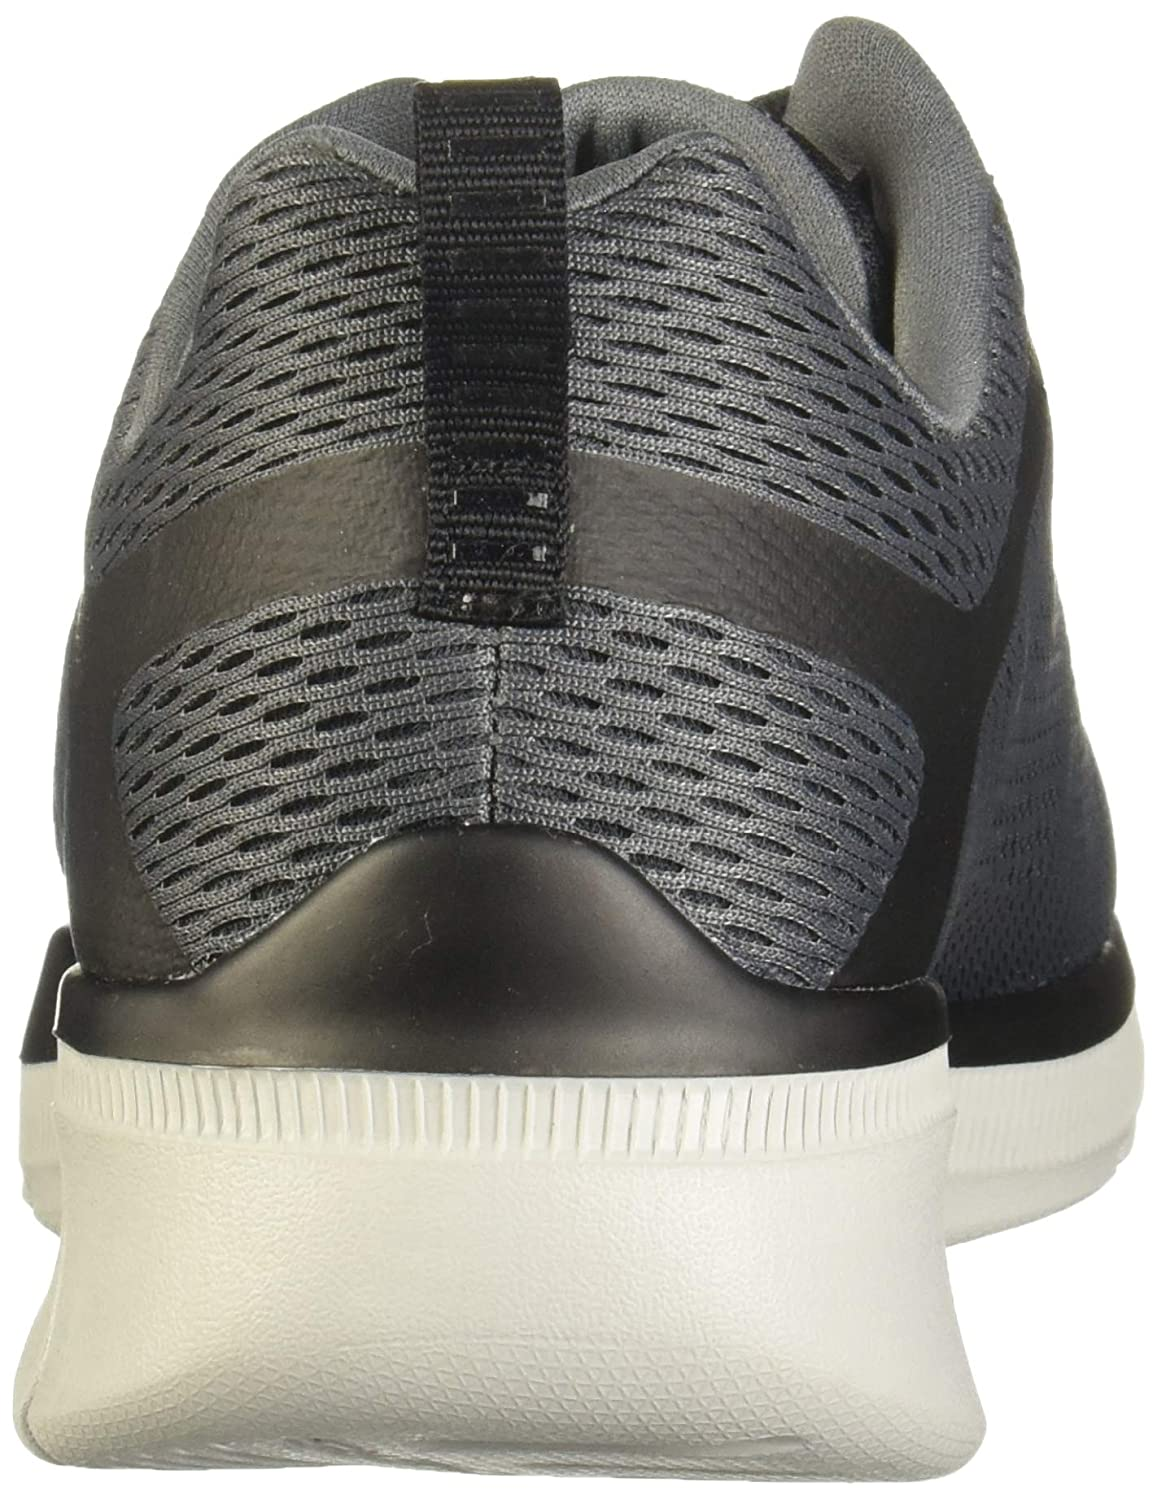 De 3 Fitness Lc354rjaq Equalizer Skechers Homme 0chaussures 8OP0wnkNX